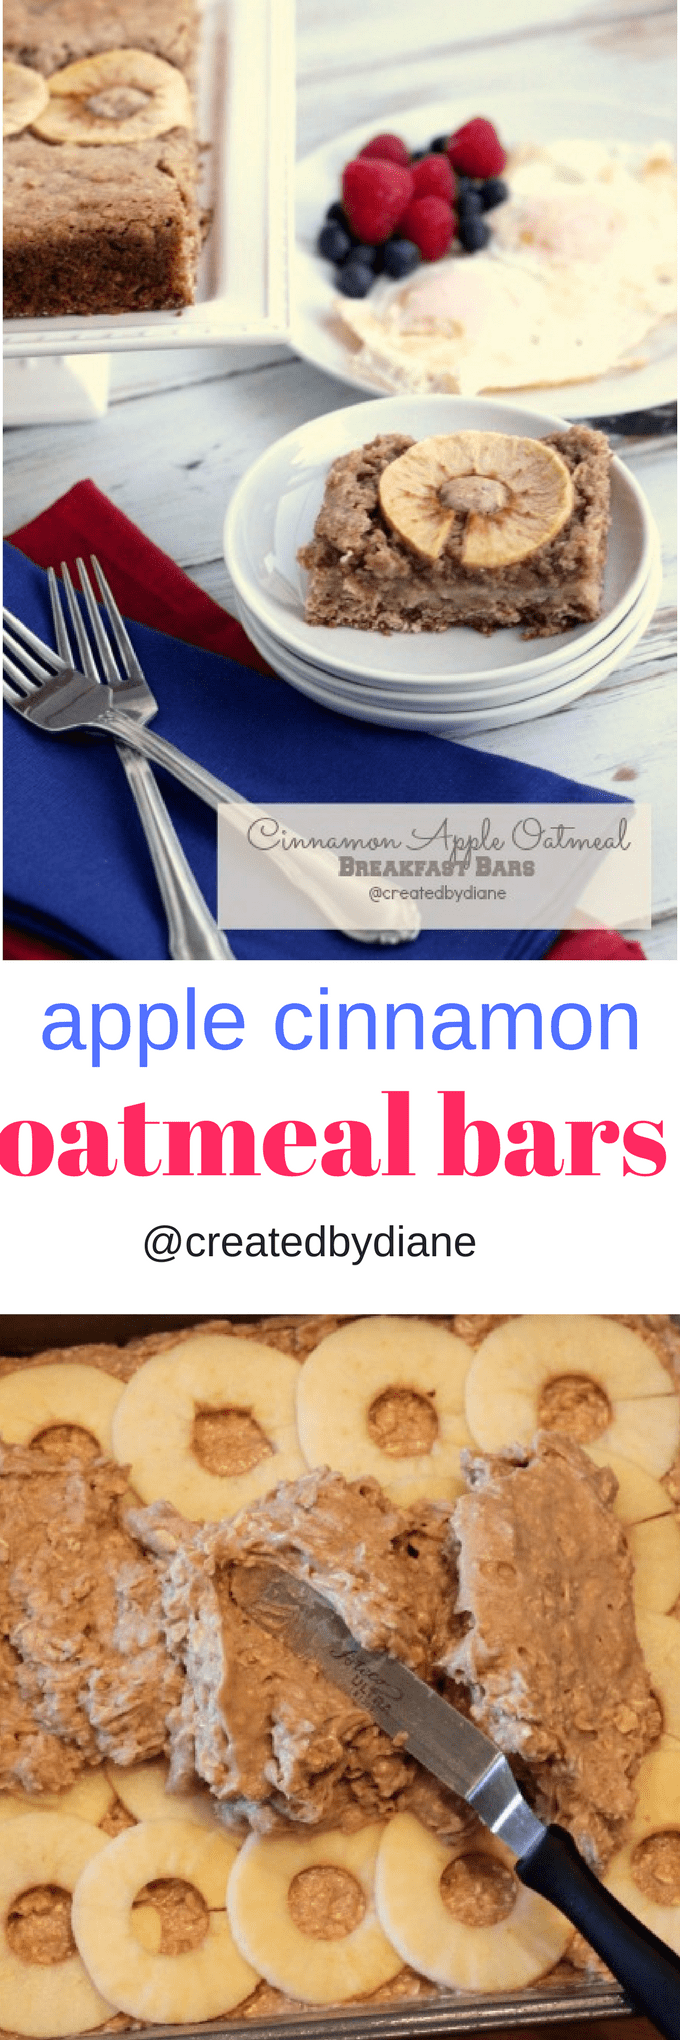 apple cinnamon oatmeal breakfast bars @createdbydiane